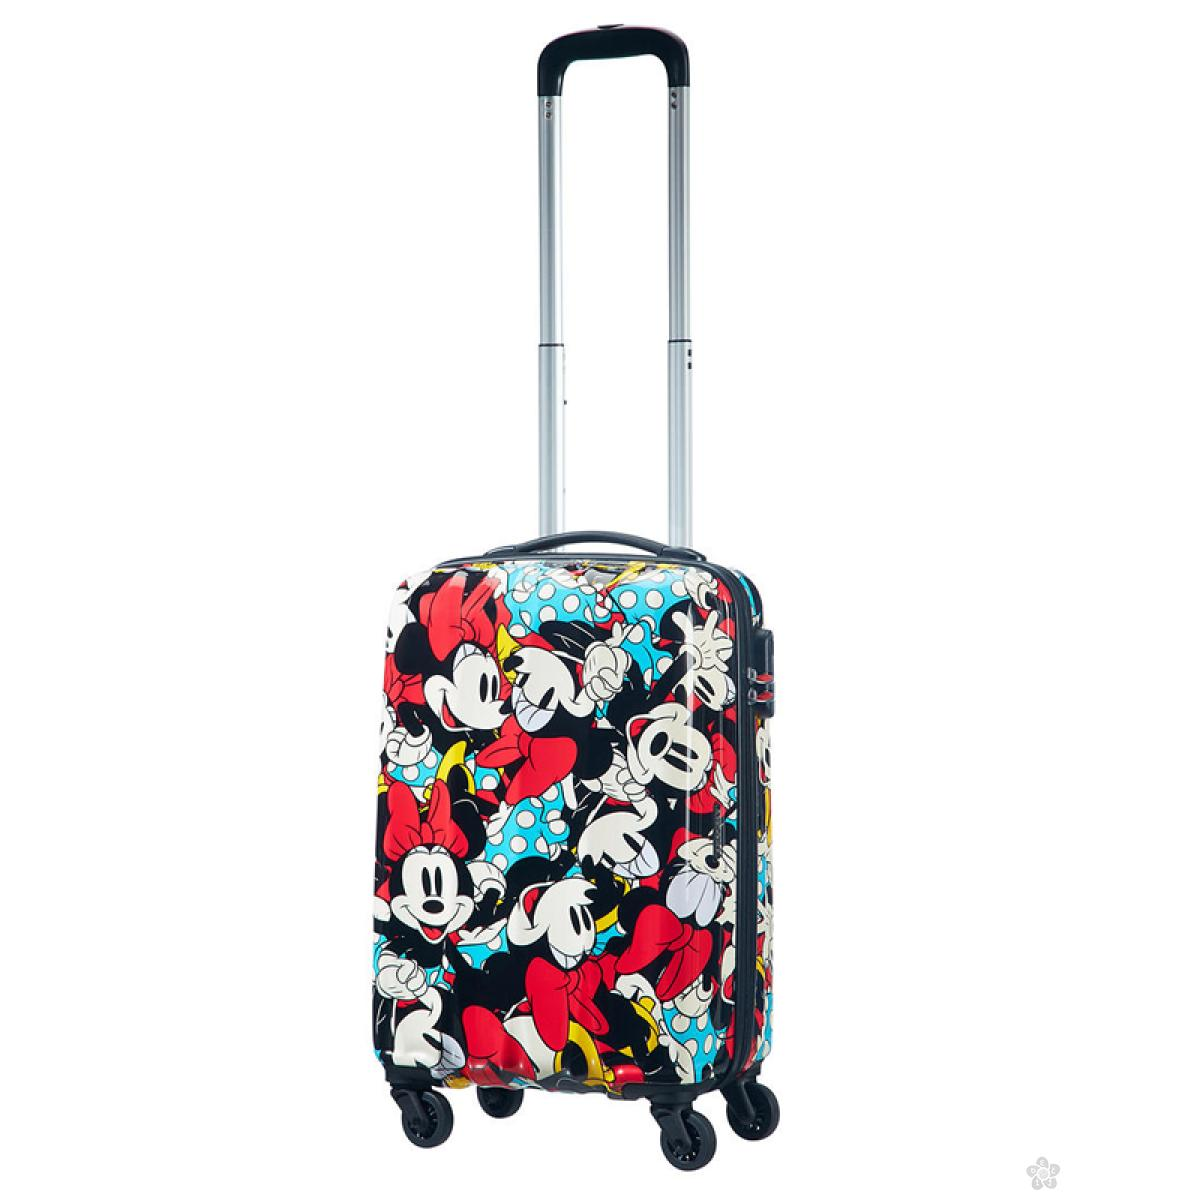 American Tourister kofer Minnie 75cm 19C-10008